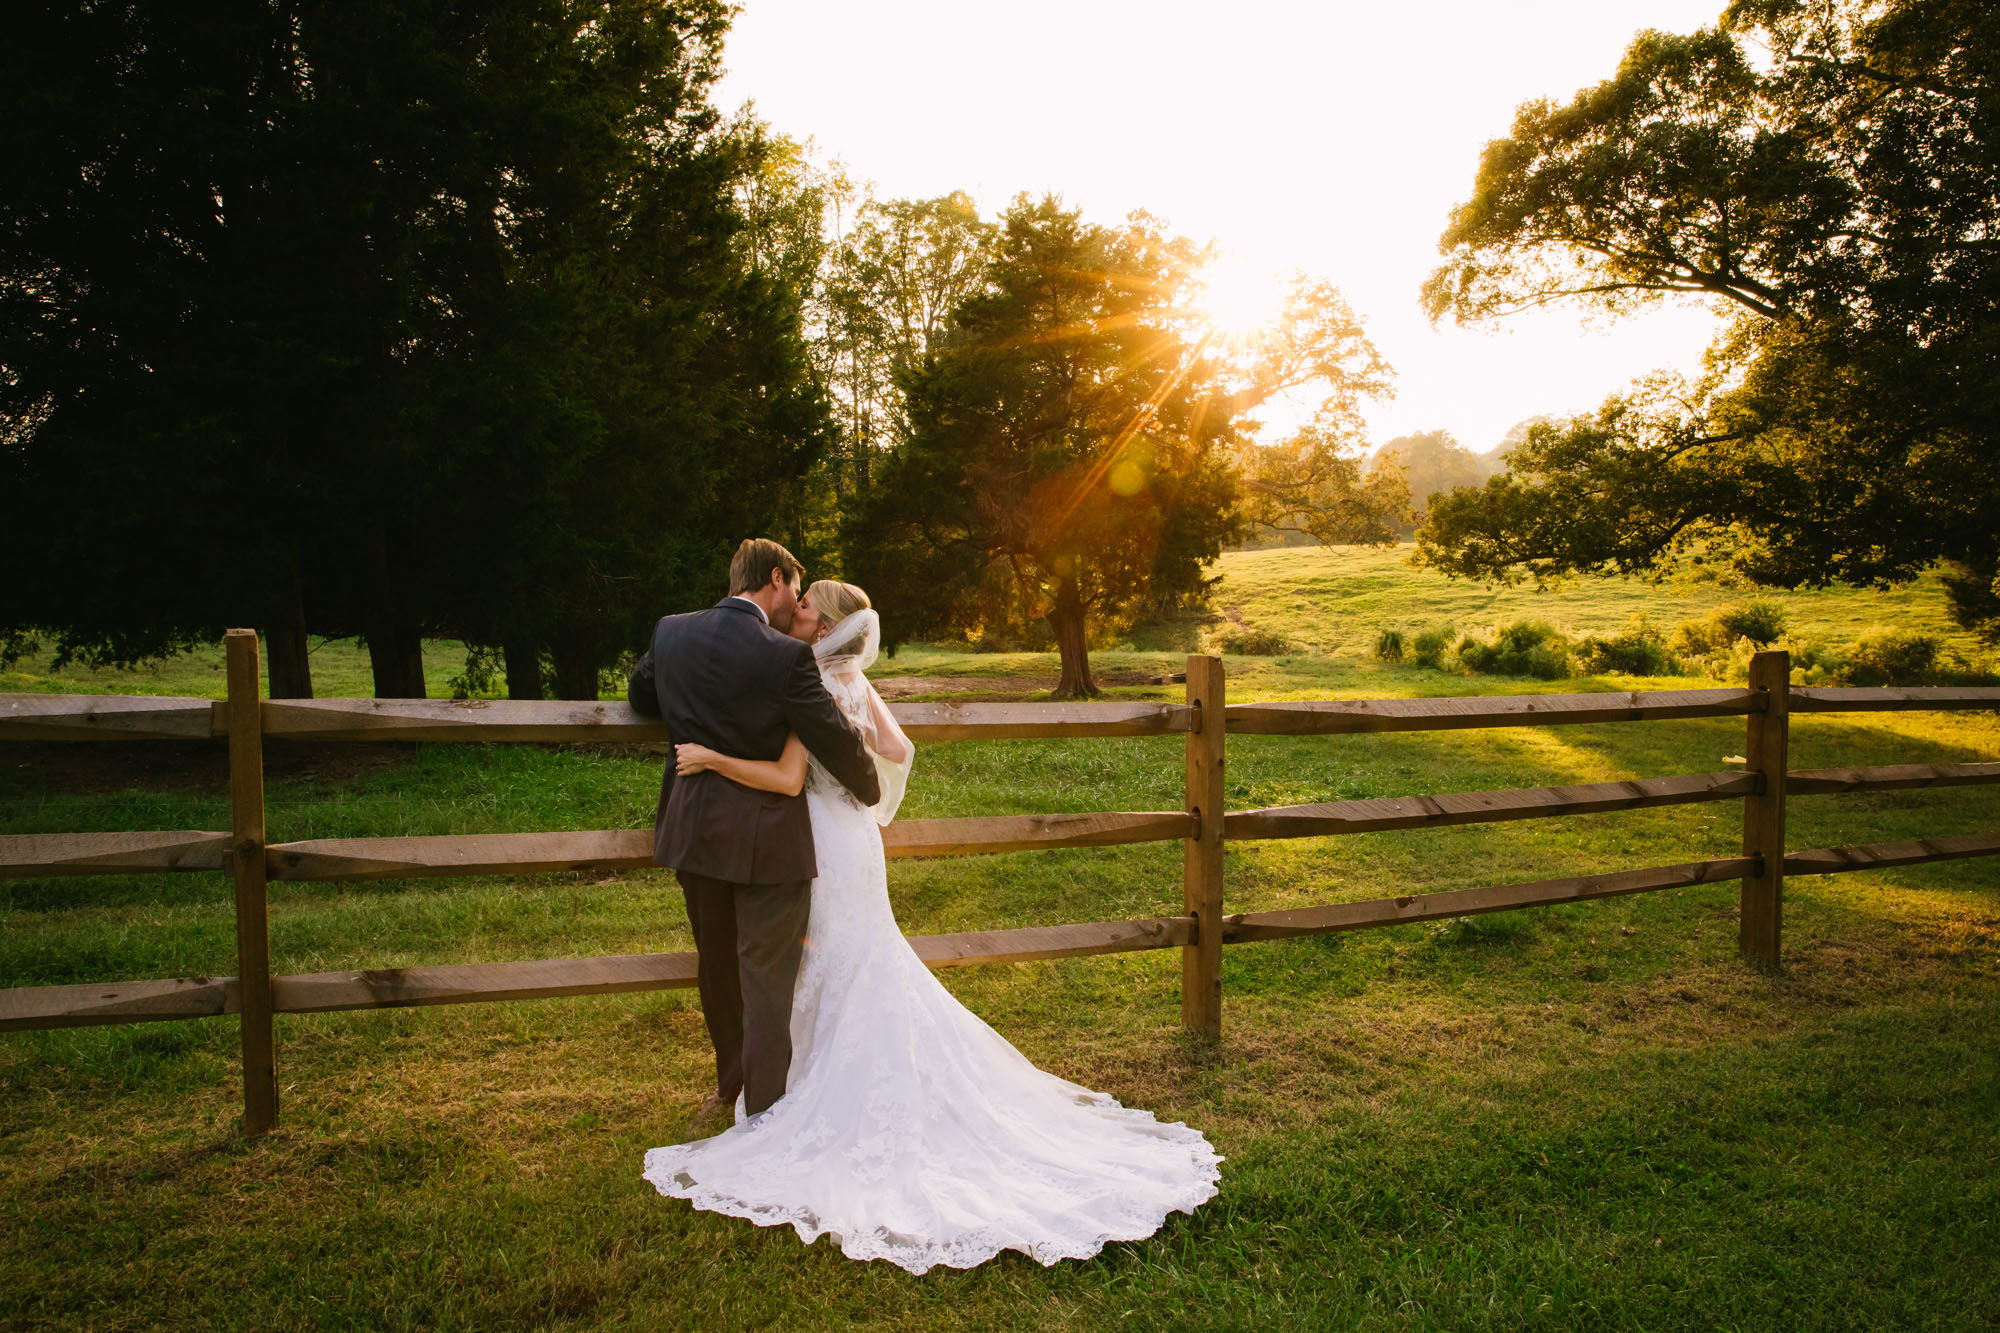 Waynesville, NC Wedding Photography | Bride and Groom kissing on the fence line